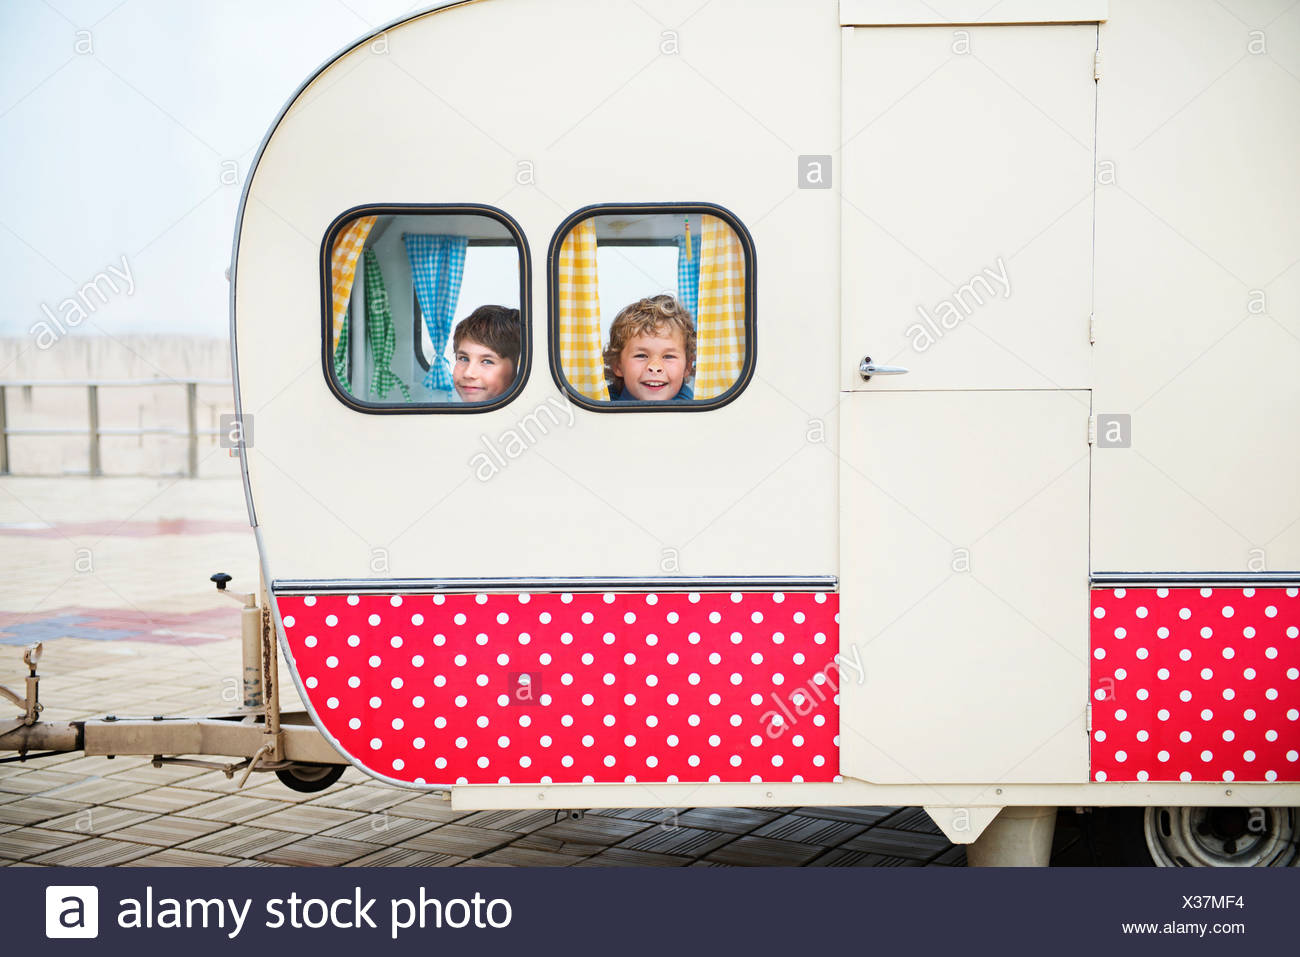 Boys looking through caravan windows, portrait - Stock Image